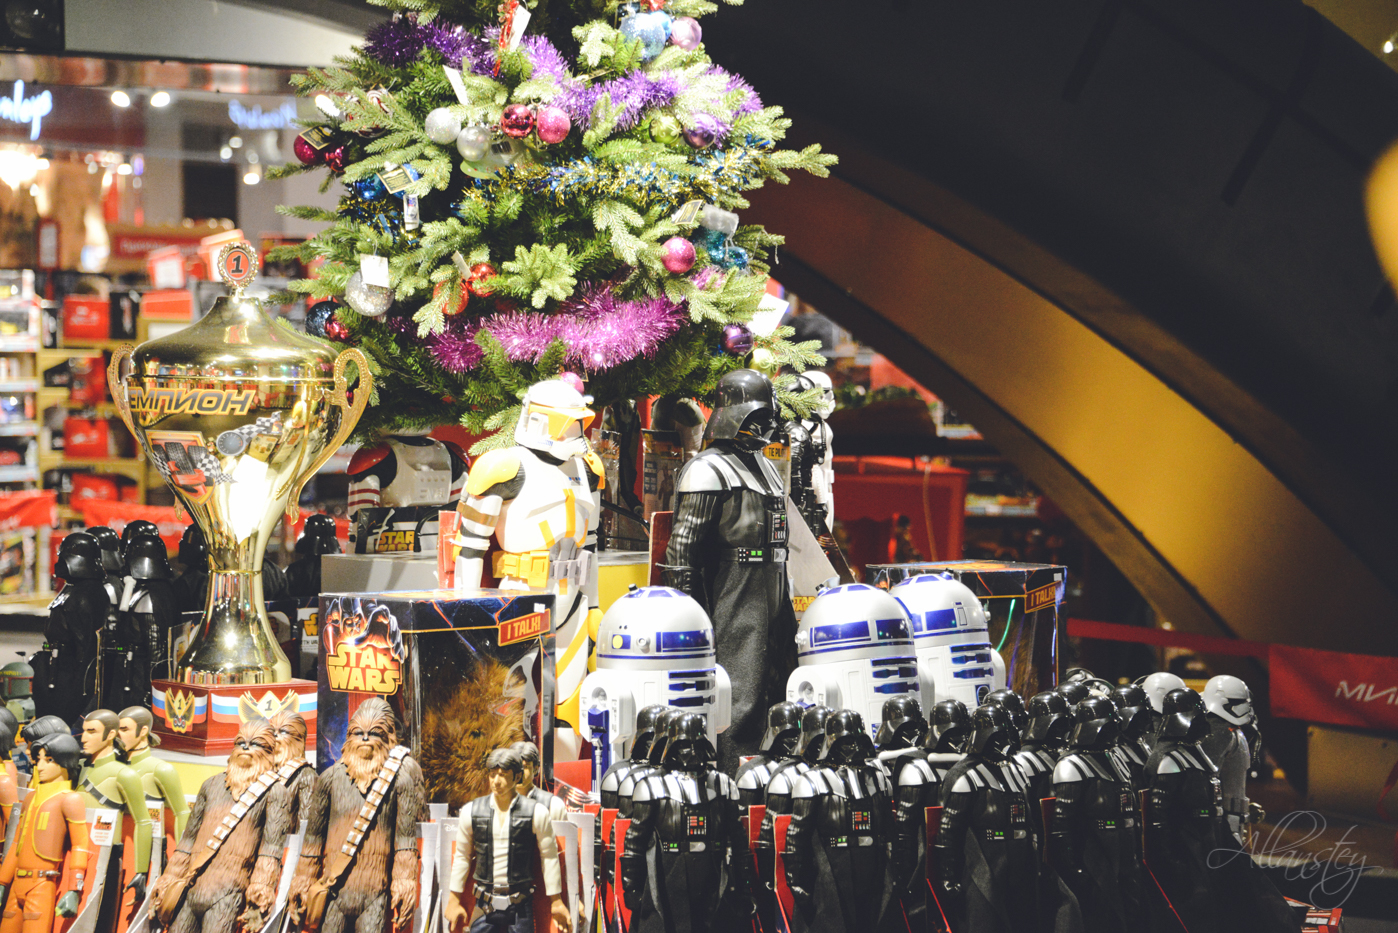 Star Wars in Detsky Mir shop